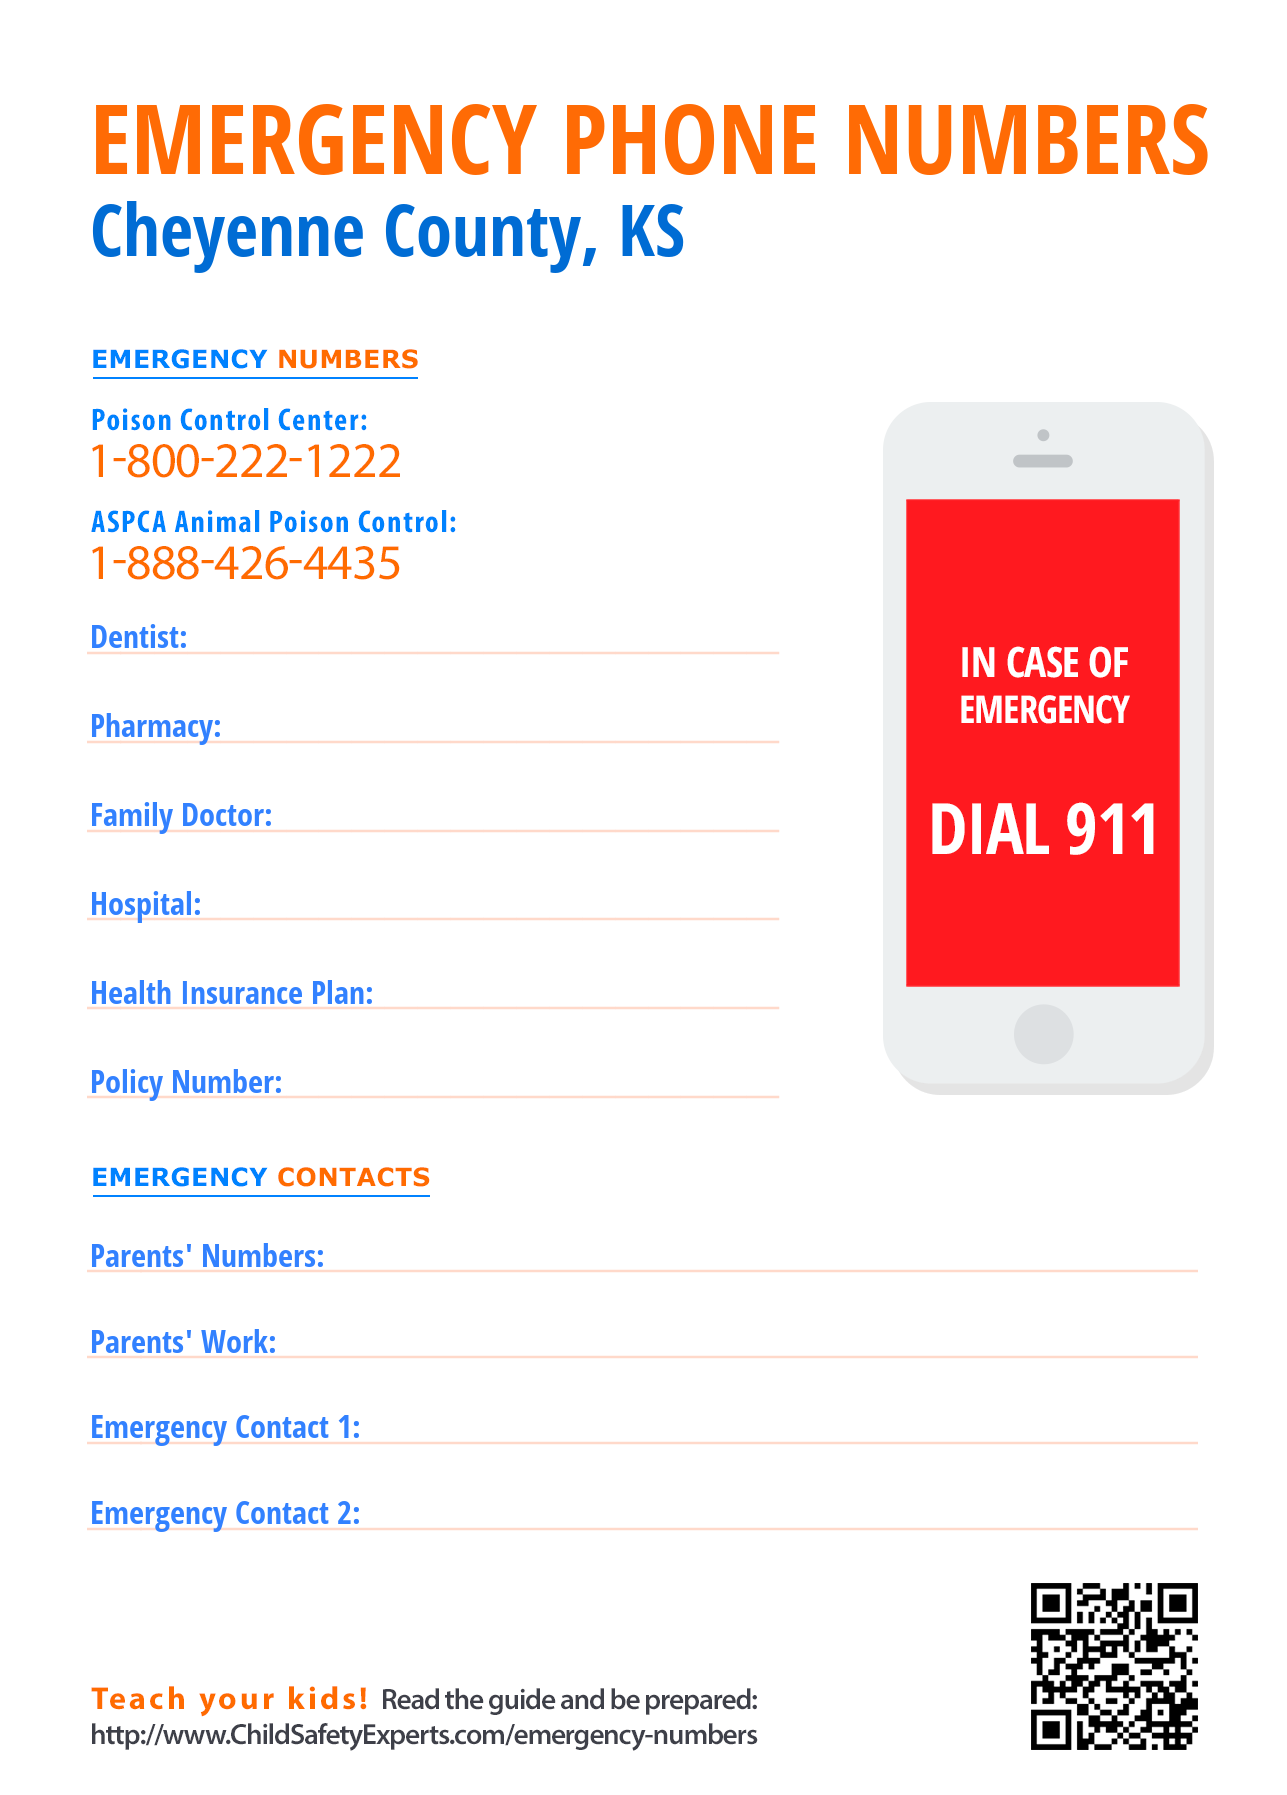 Important emergency phone numbers in Cheyenne County, Kansas